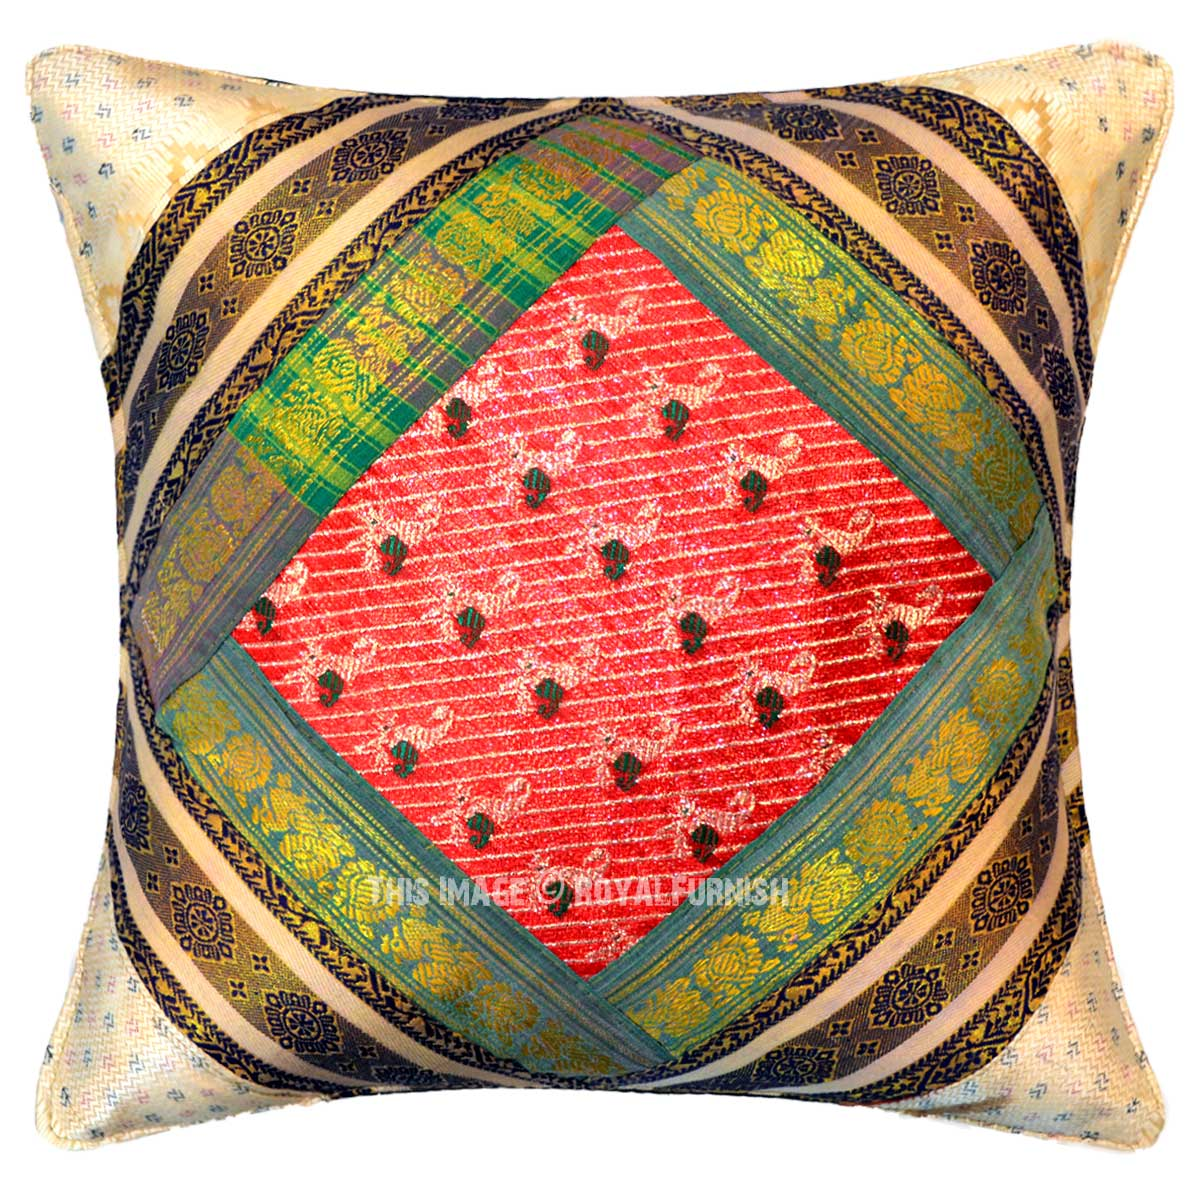 Throw Me A Pillow Coupon Code : Multi Silk Sari Unique One-Of-A-Kind Throw Pillow Cover 16X16 Inch - RoyalFurnish.com